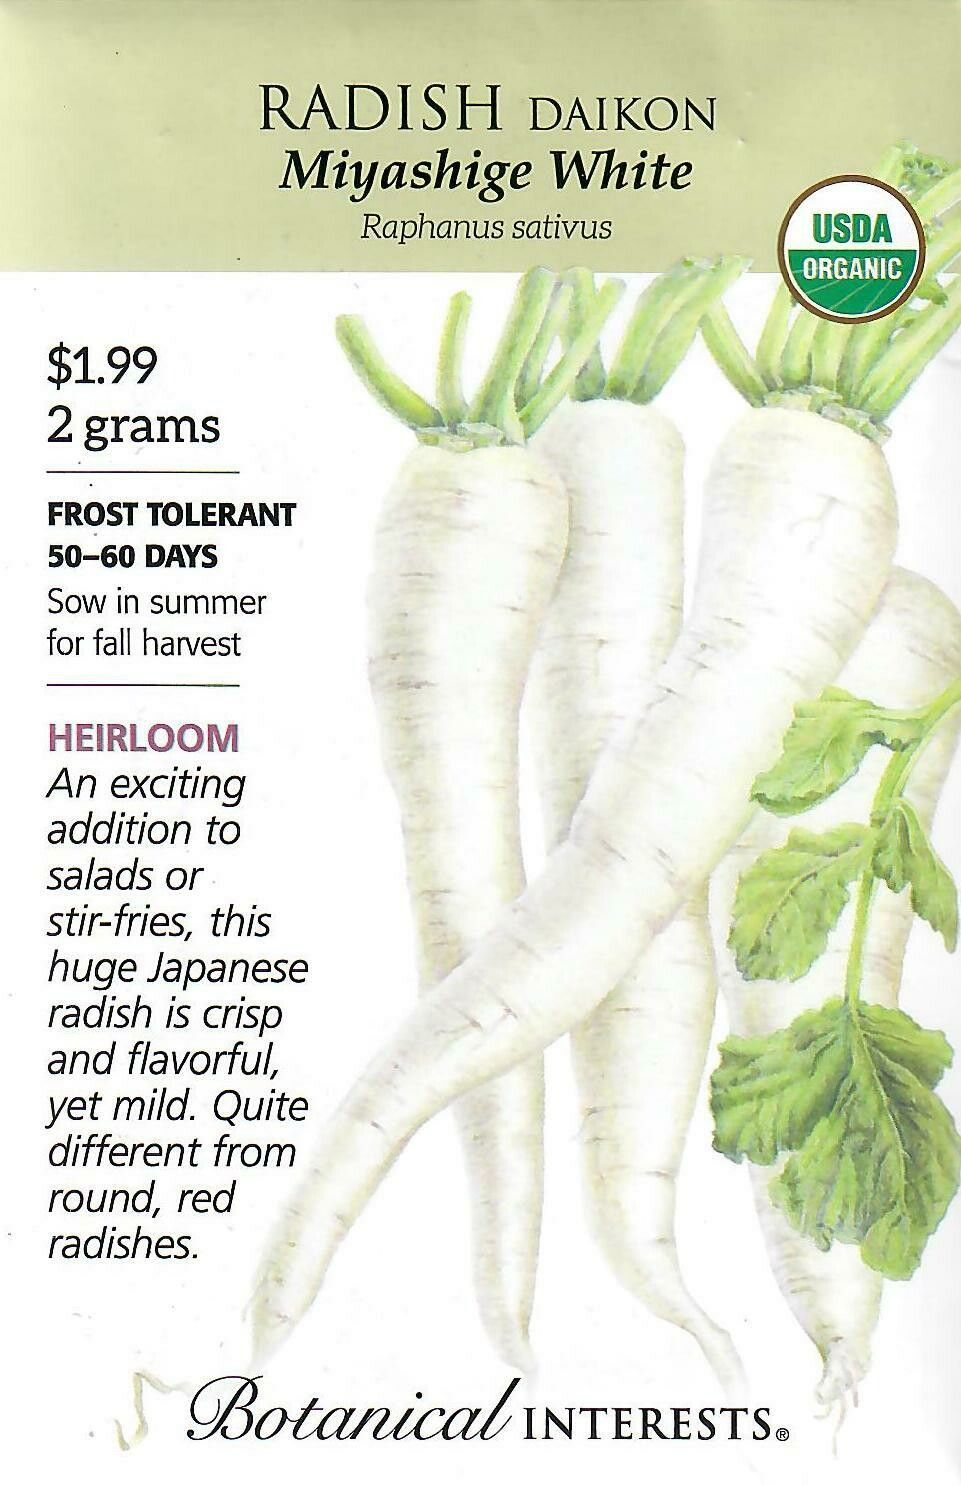 Radish Daikon (white) Org Botanical Interests